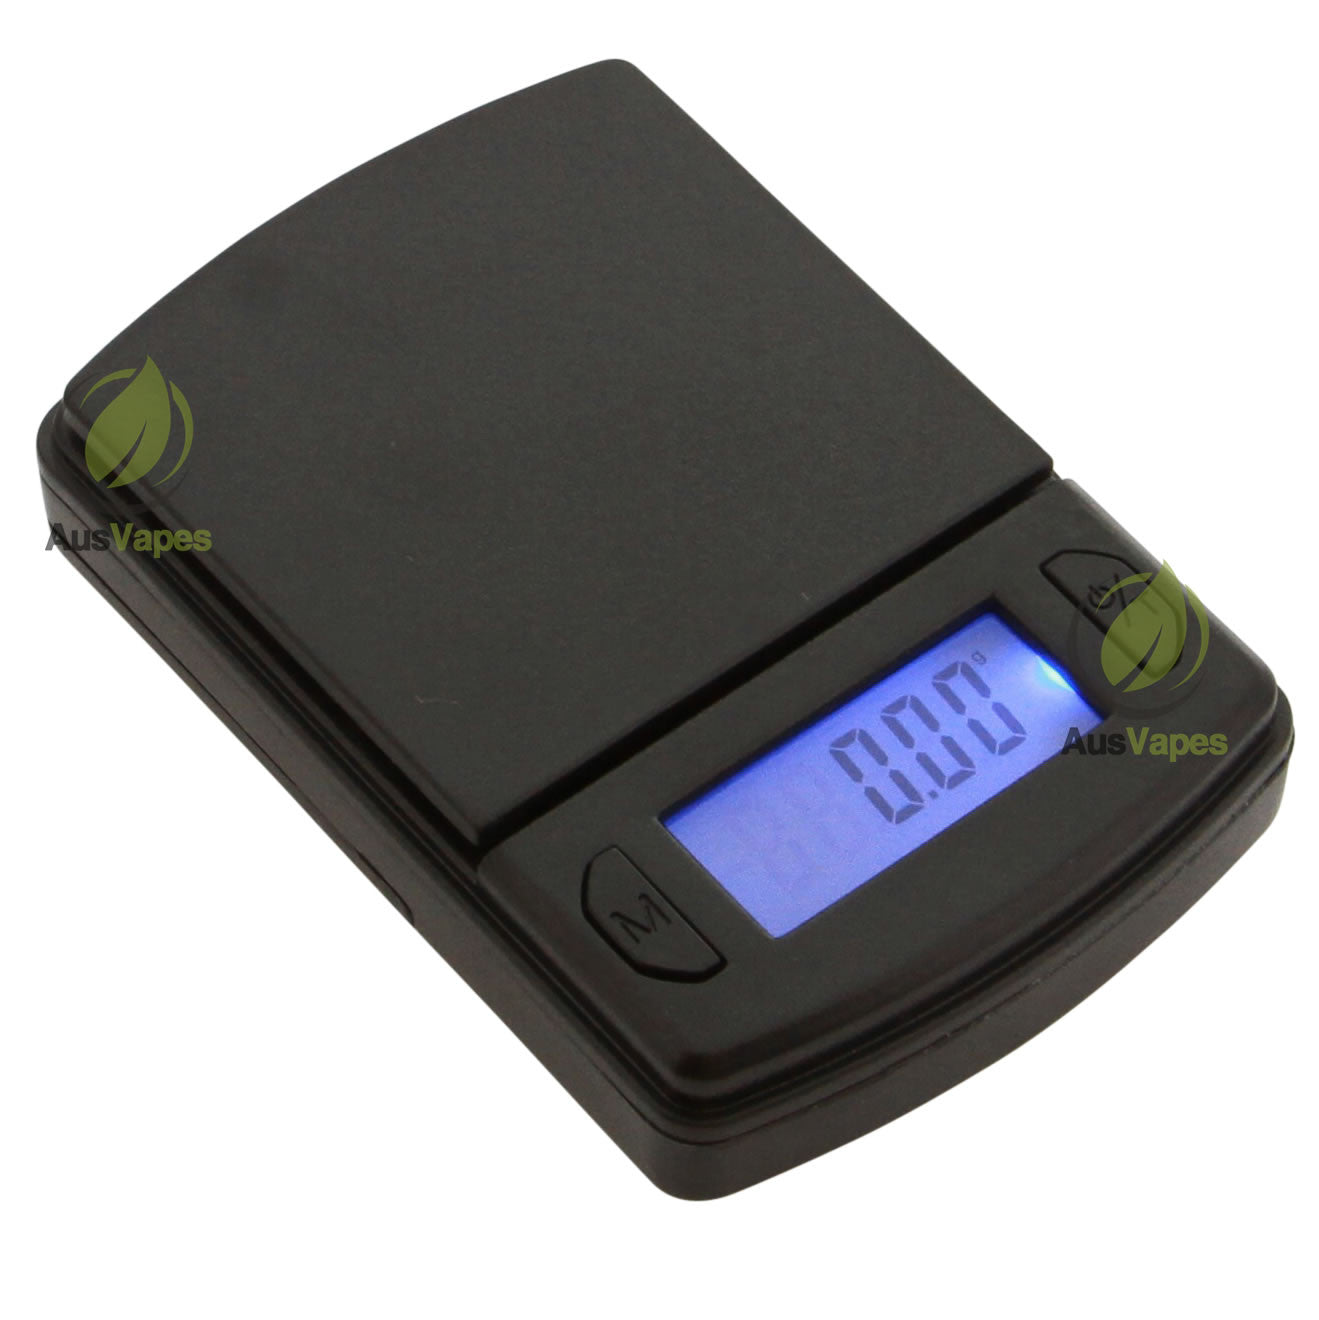 DISCONTINUED Infyniti MN-100 Minii Digital Pocket Scale 100g x 0.01g